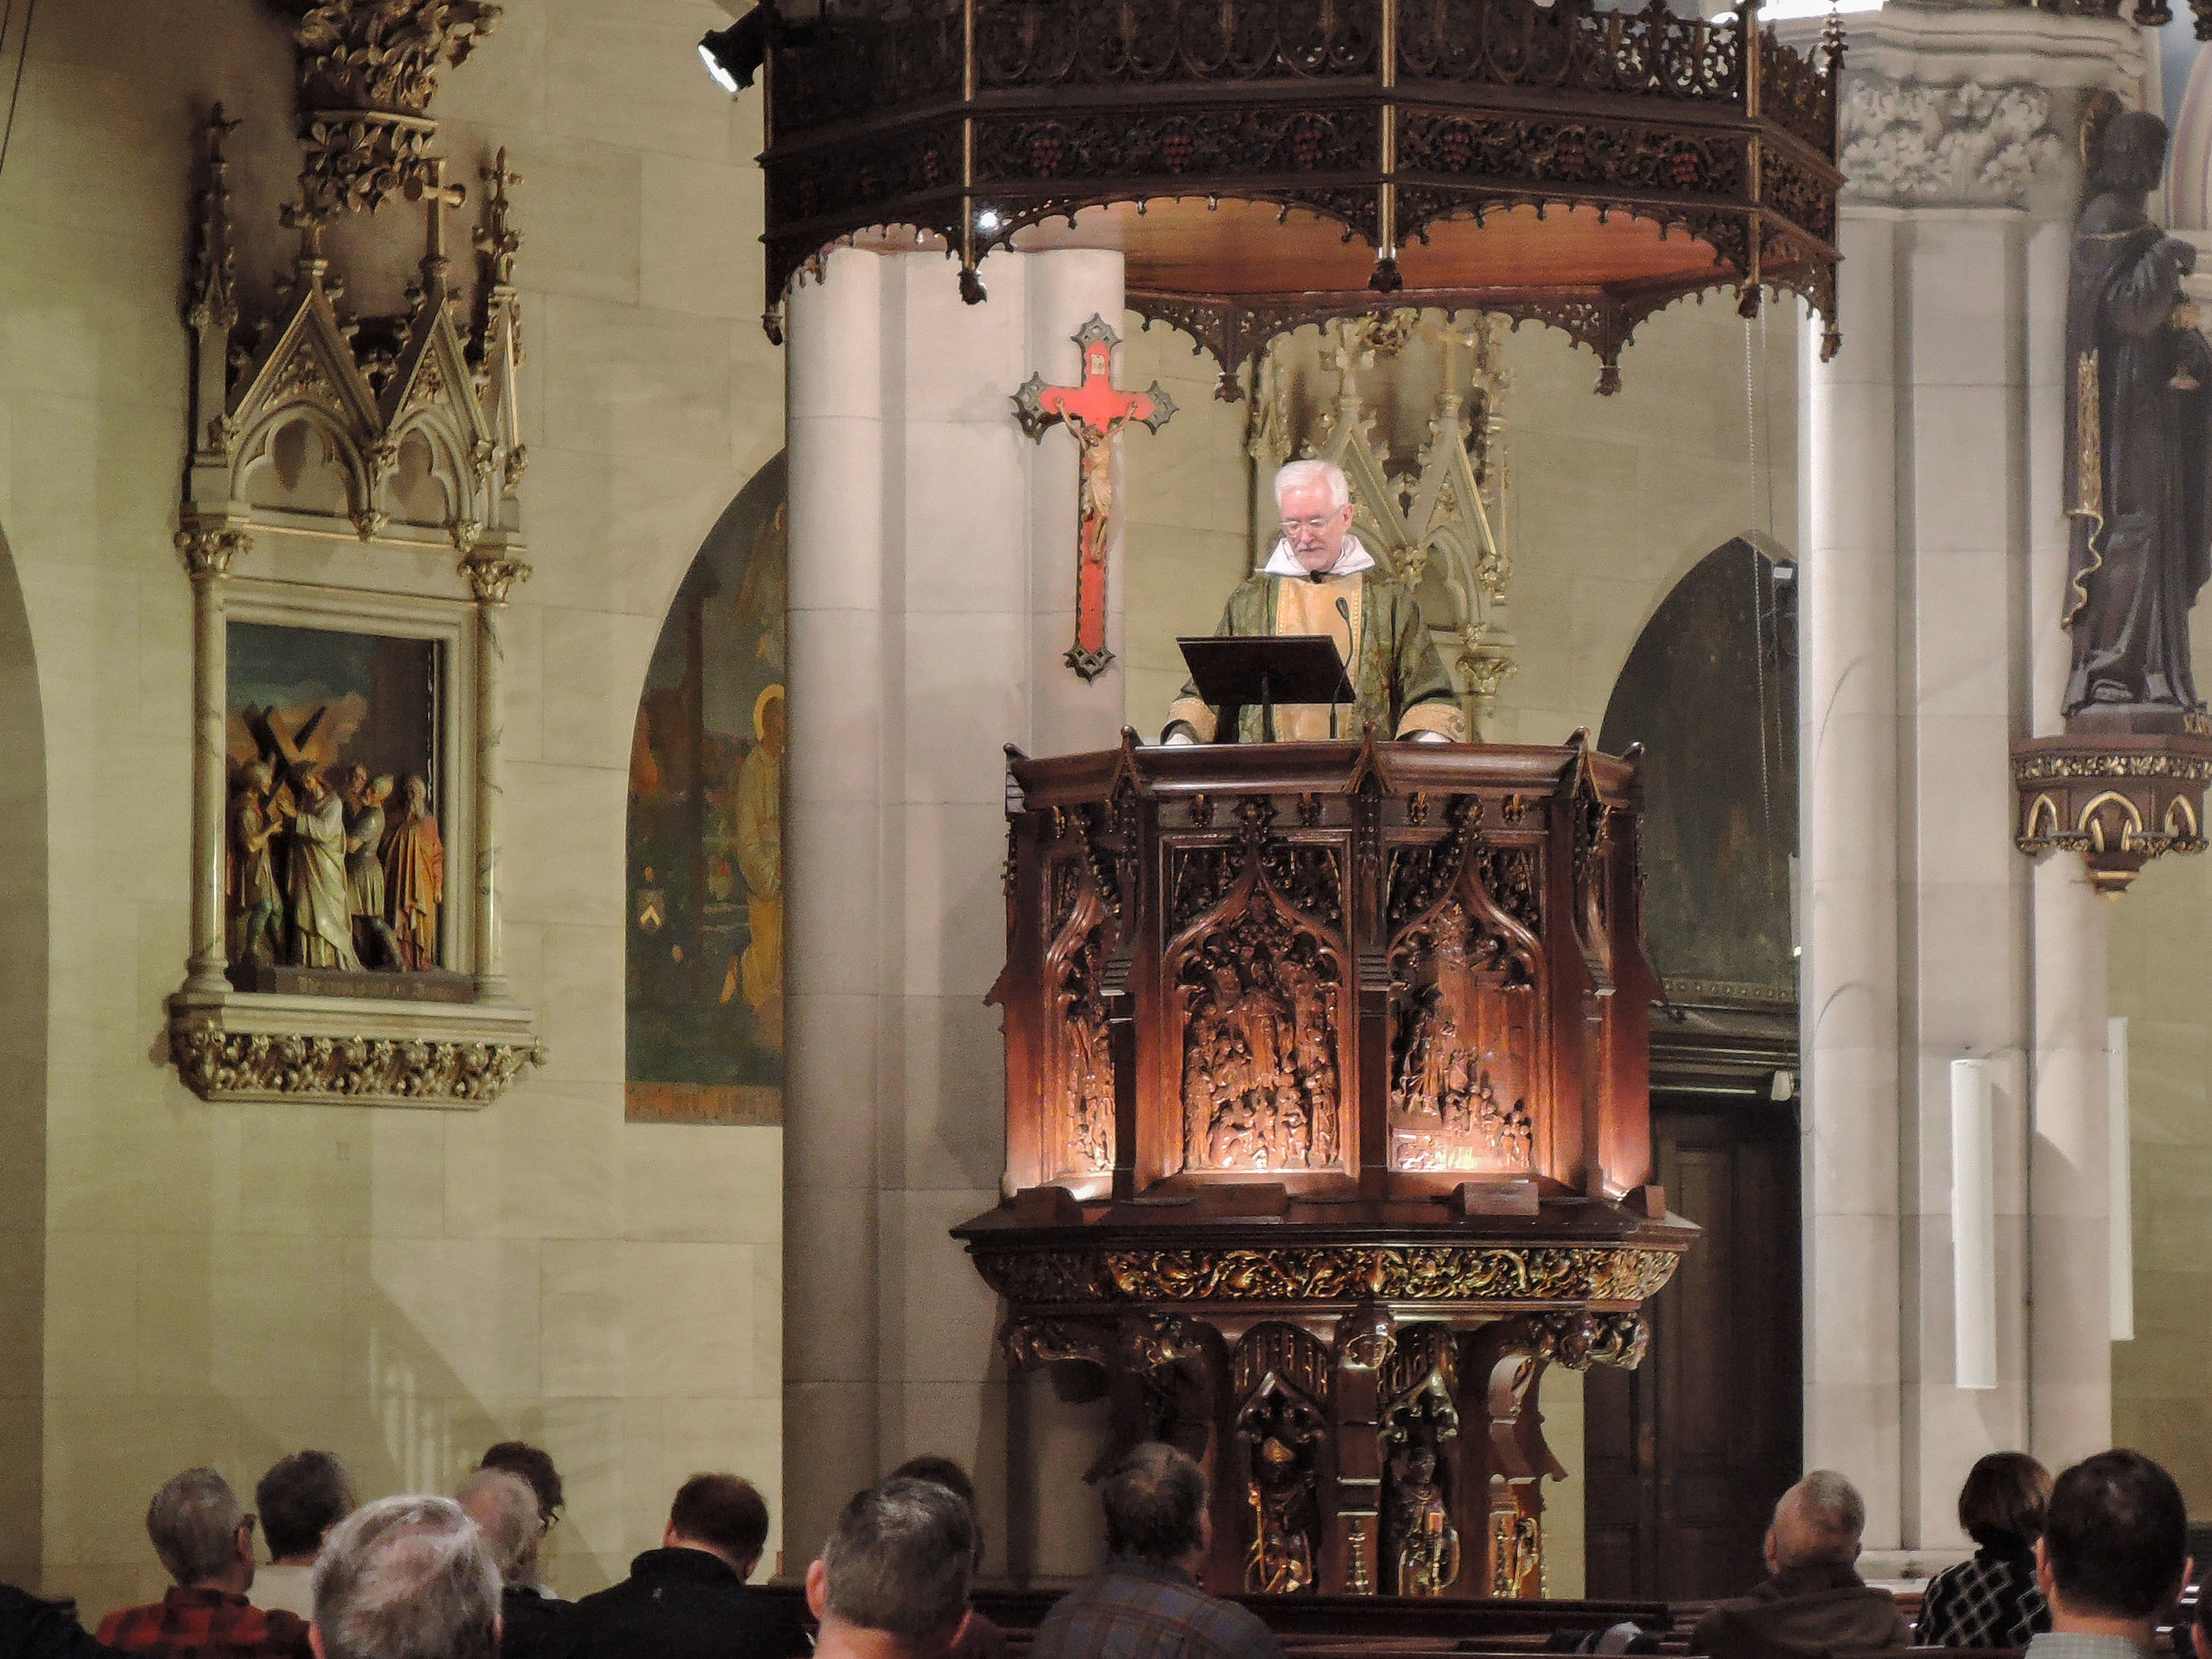 Father Jim Pace was celebrant and preacher for the Solemn Mass on Sunday, October 29.